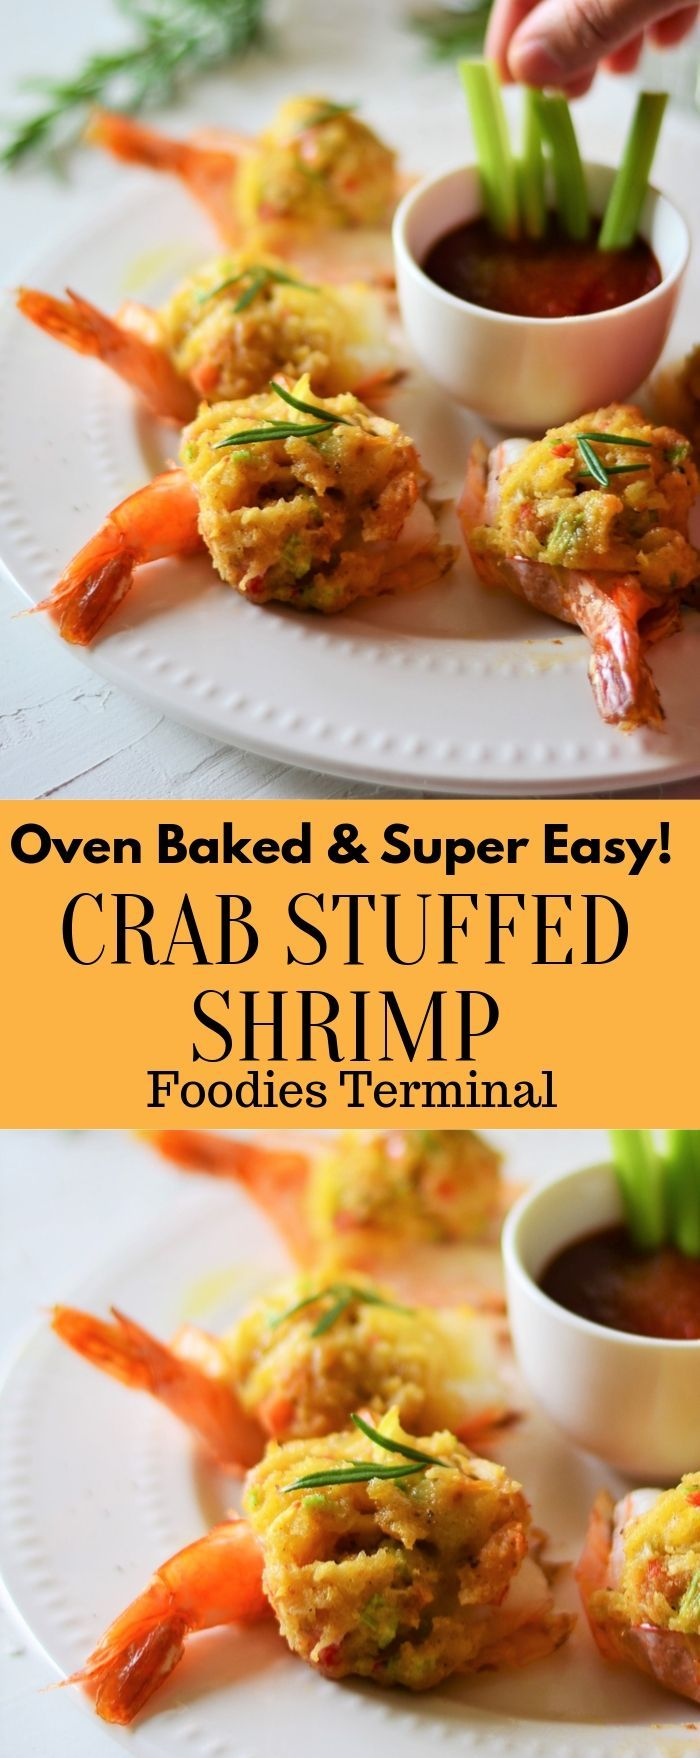 Best Baked Shrimp stuffed with Crabmeat and Ritz Crackers